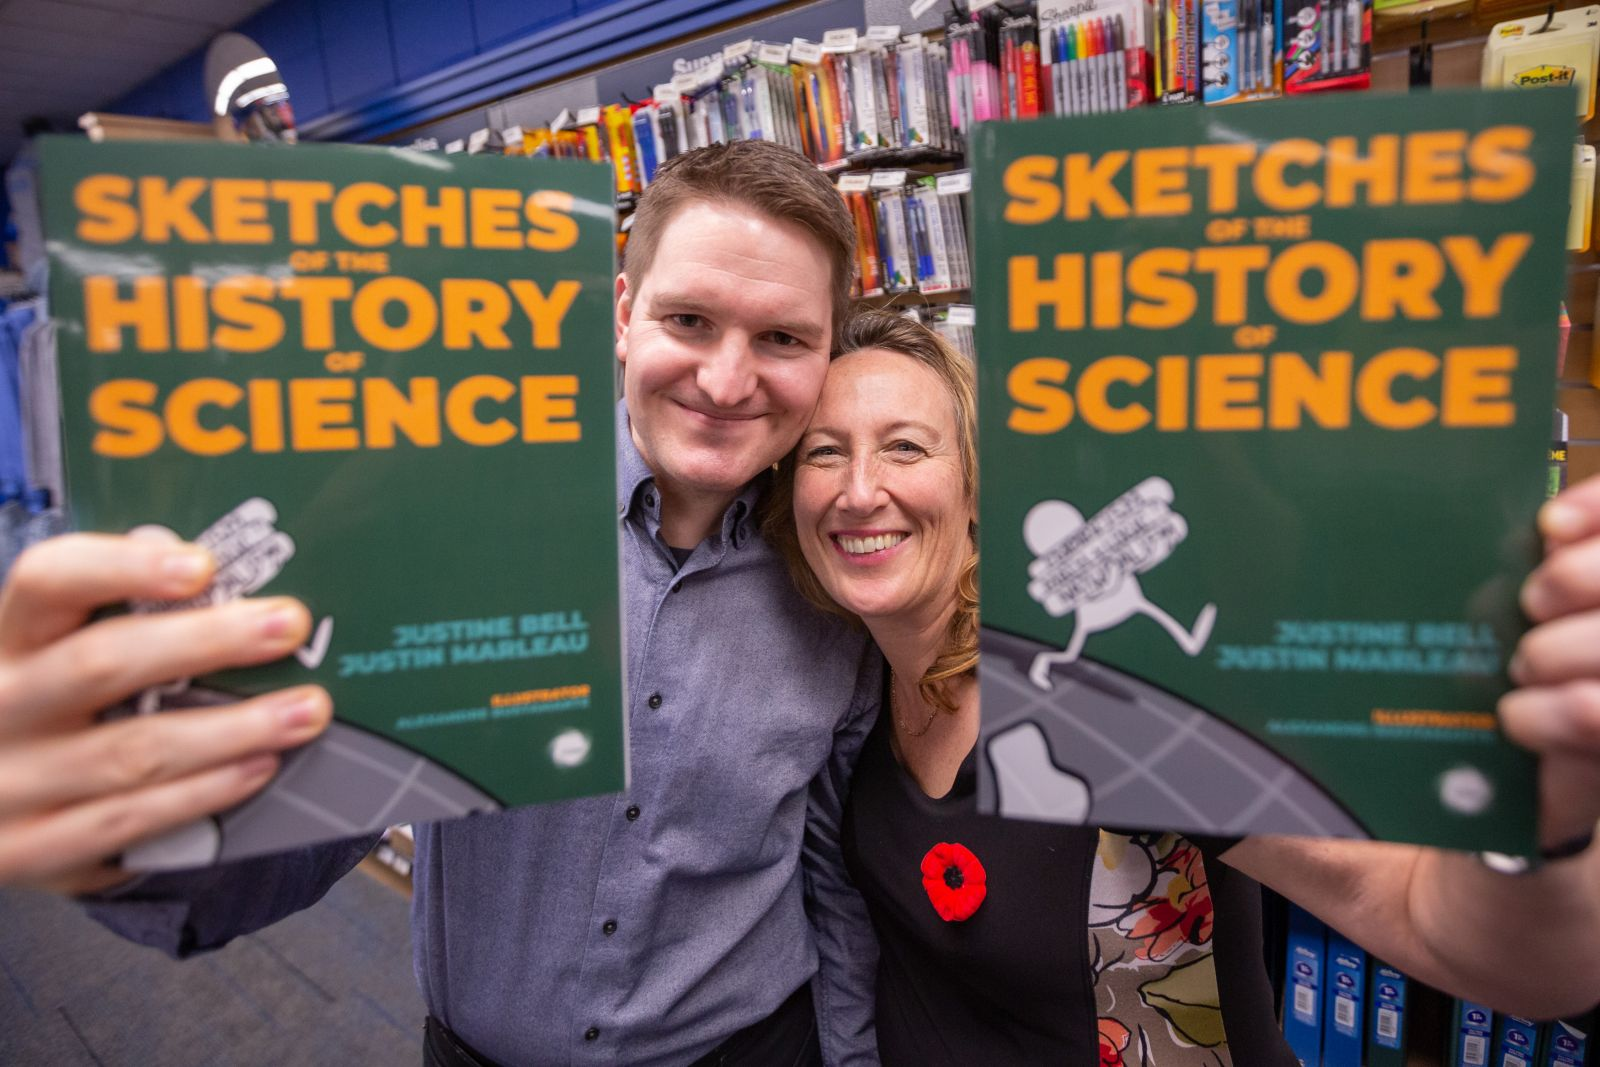 Justine Bell Justin Marleau Launch Sketches of the History of Science